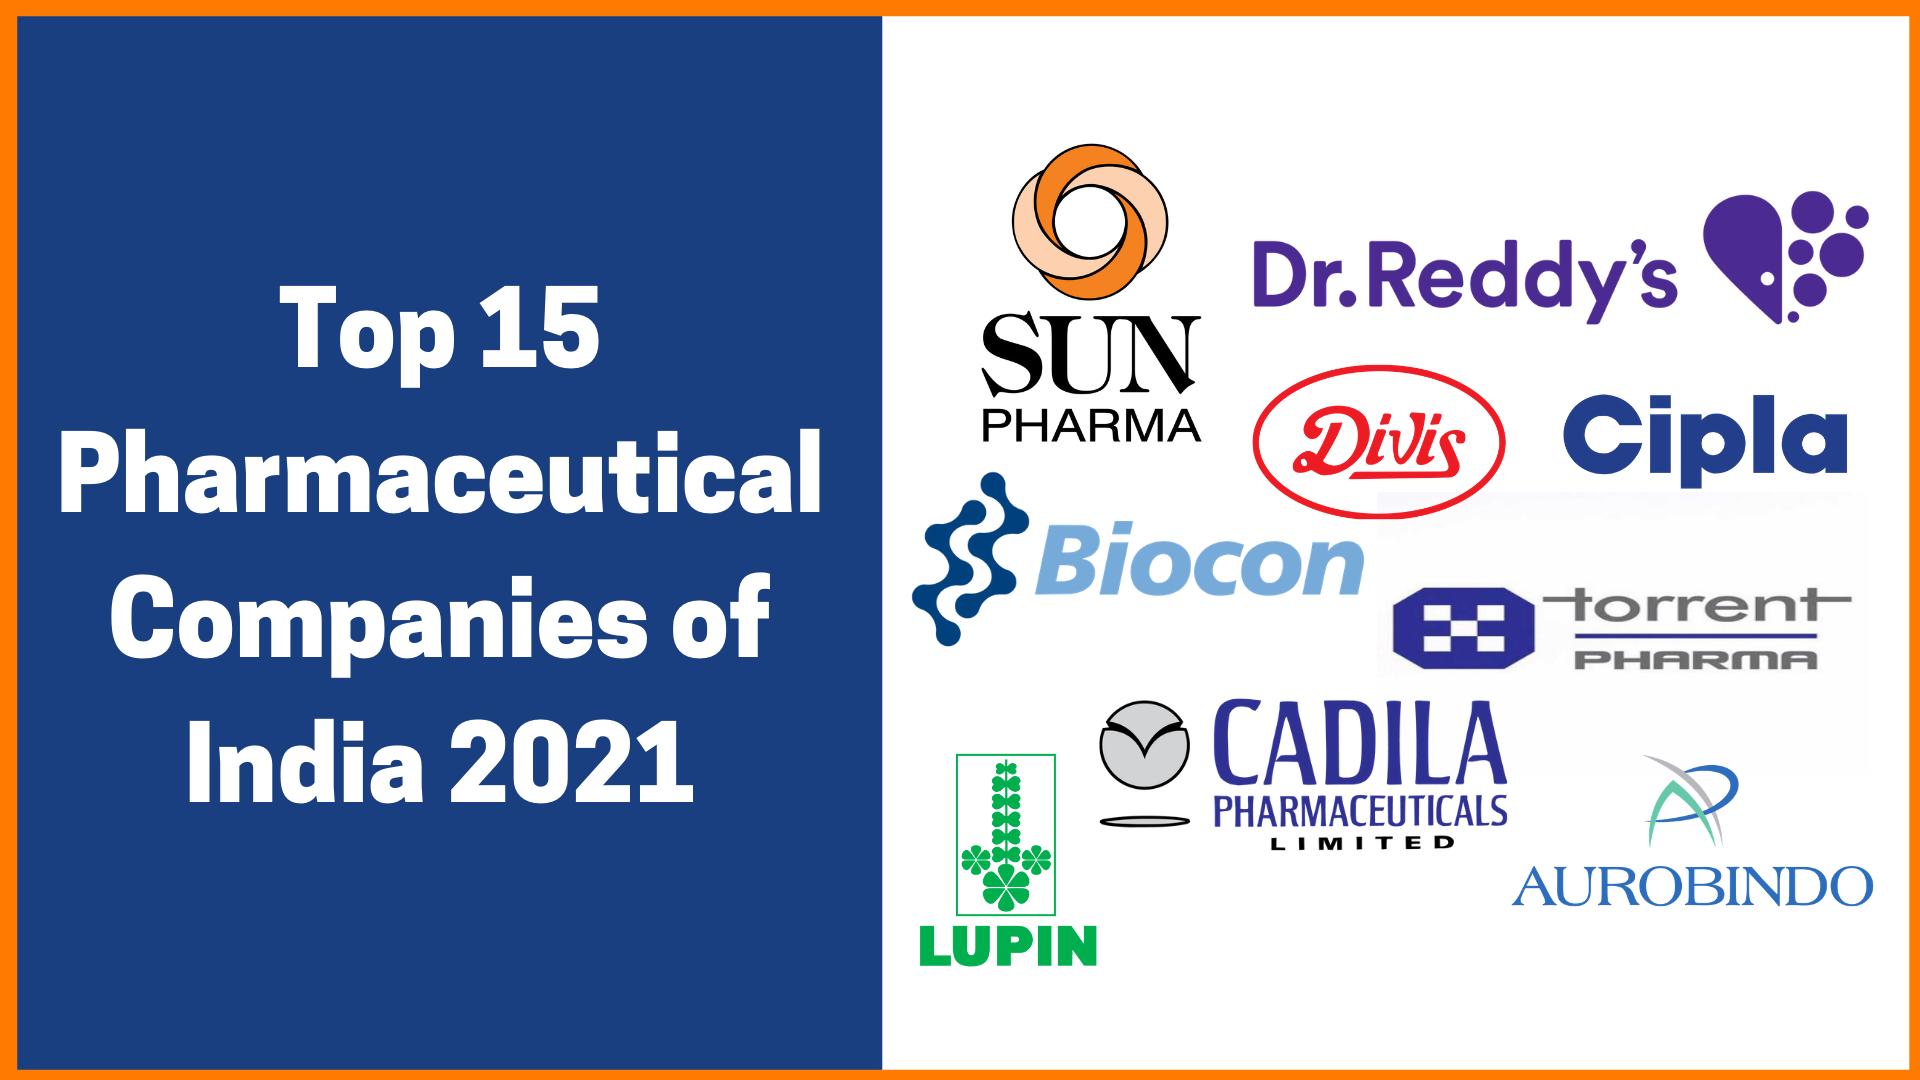 Top 15 Pharmaceutical Companies in India 2021